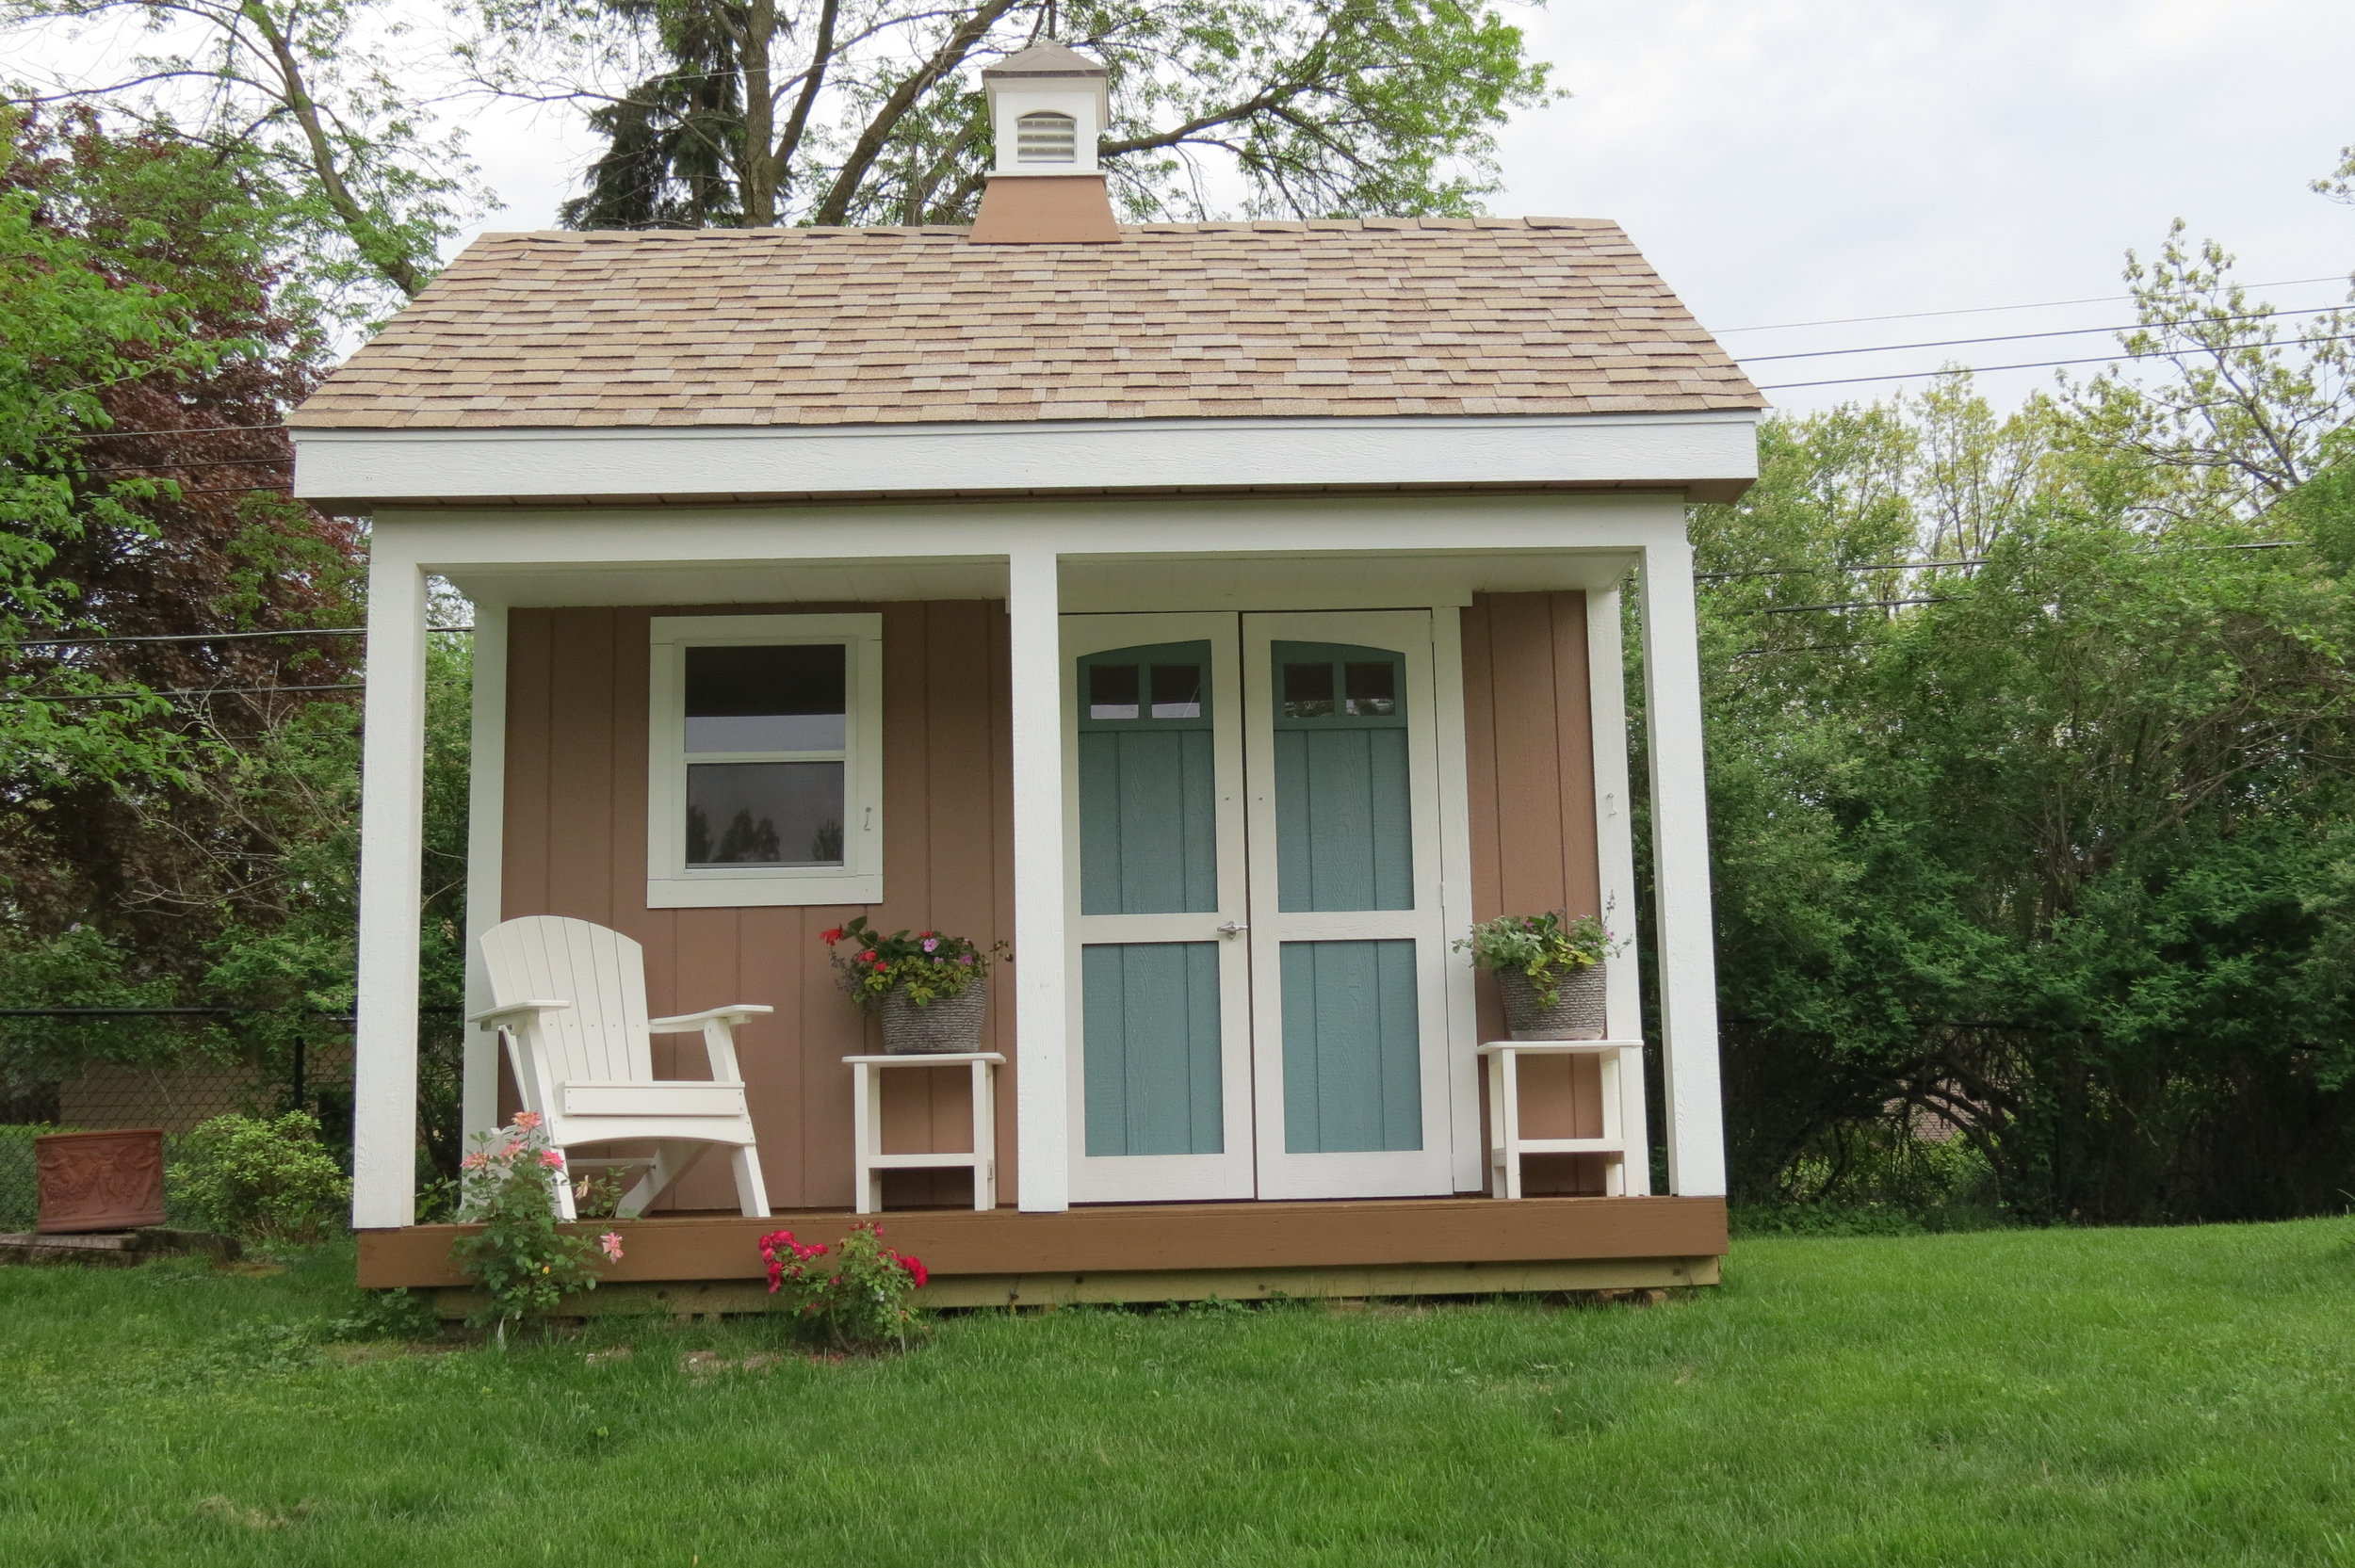 12x12x12 Gable Deluxe w/ Porch